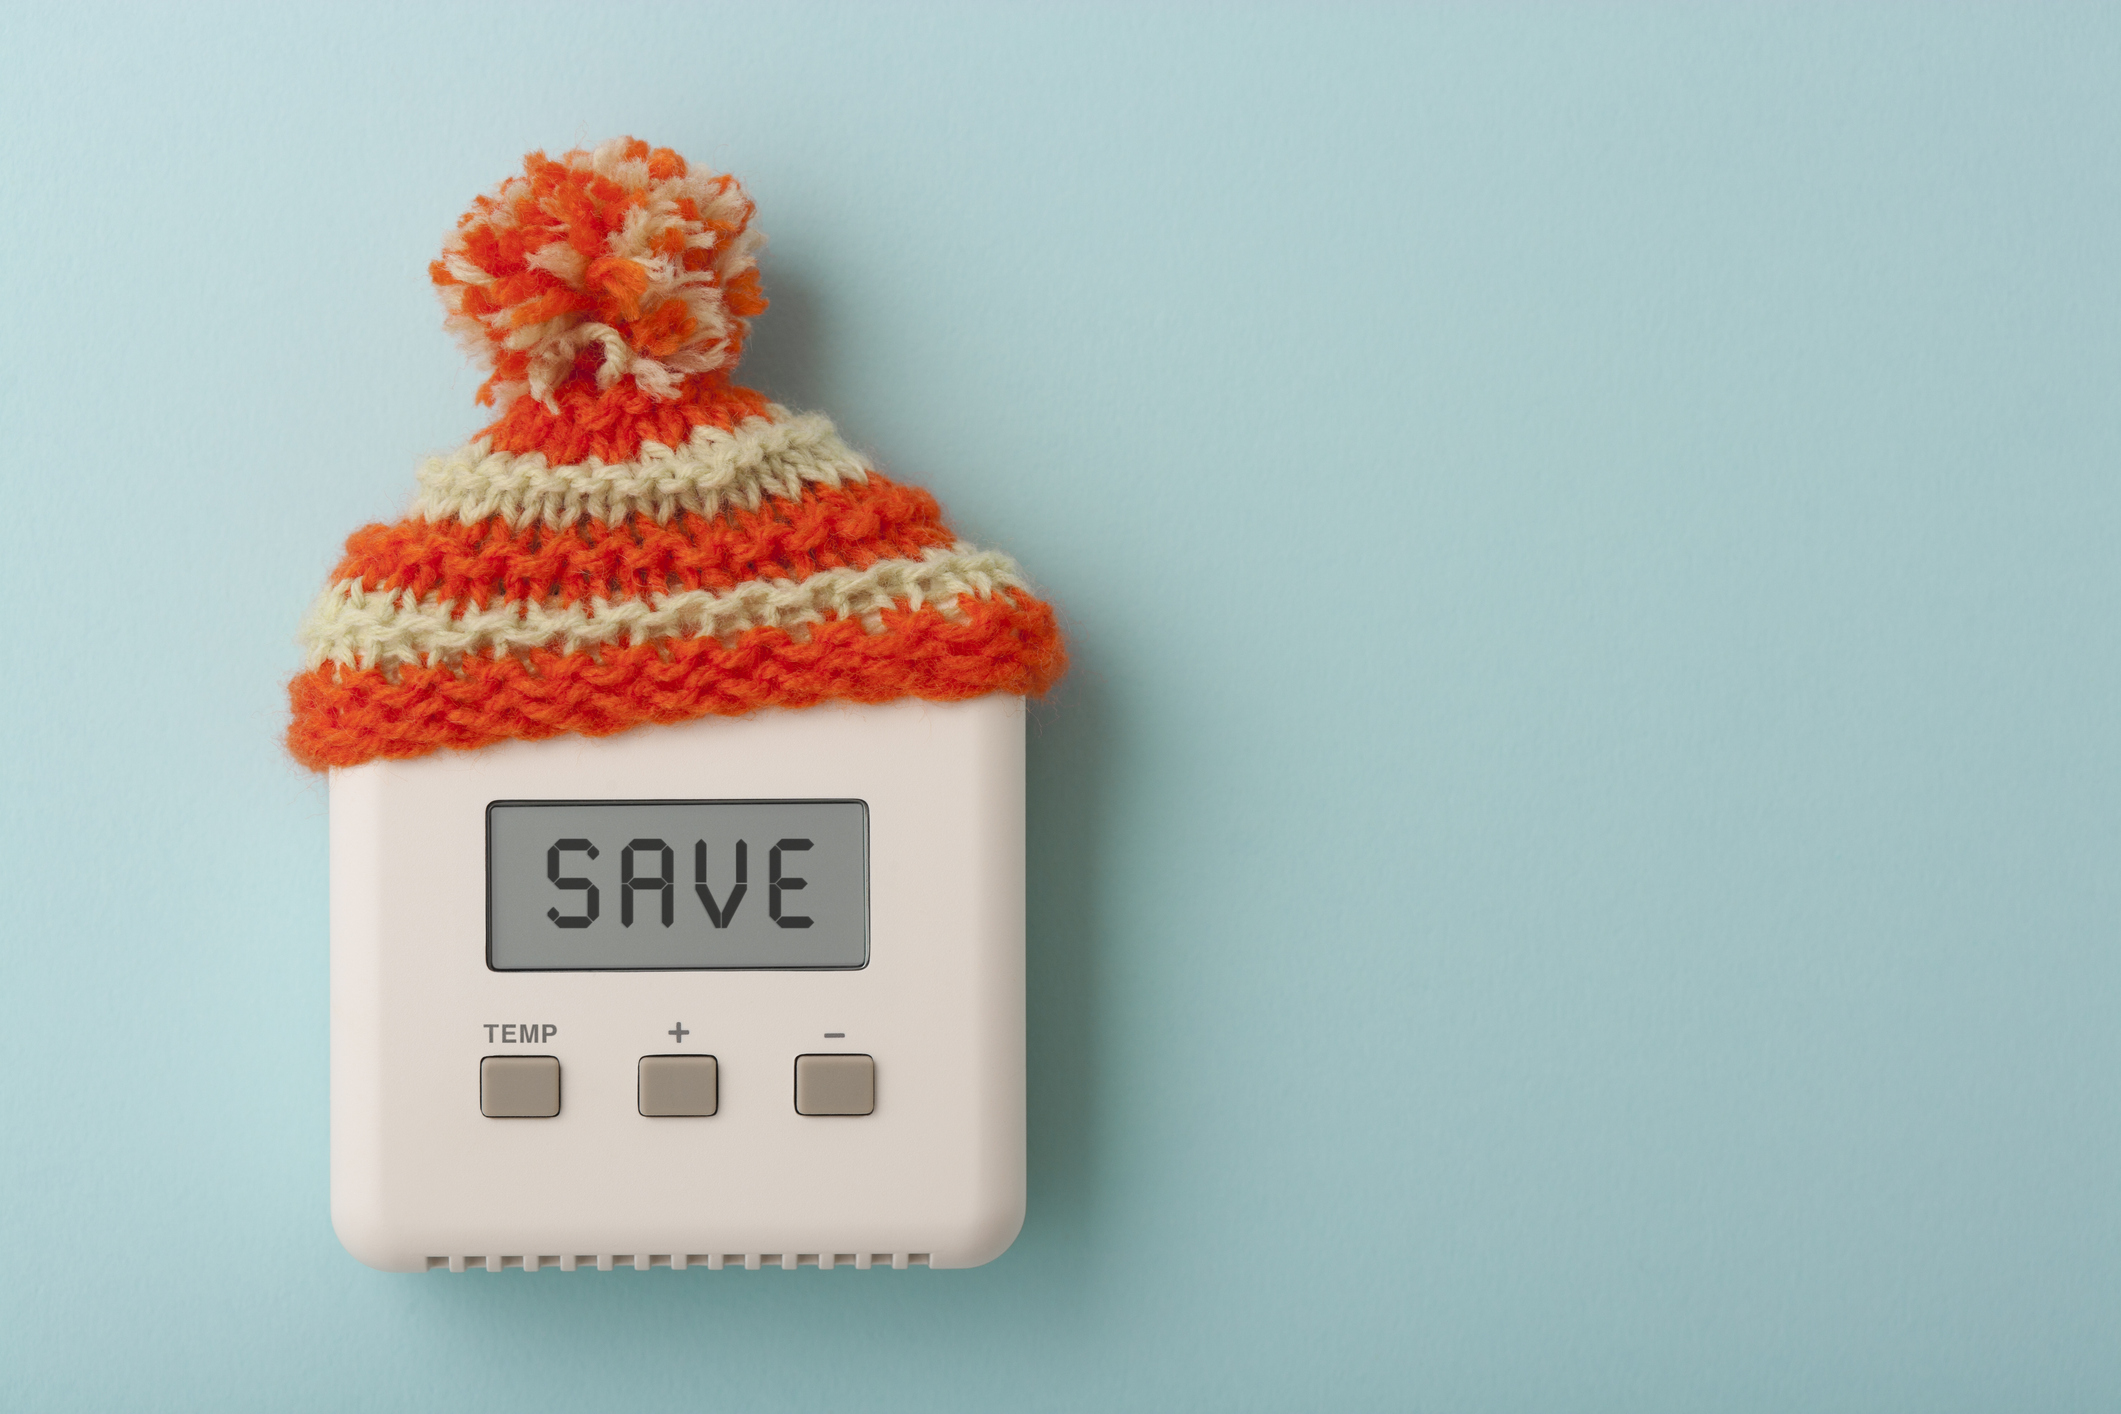 Thermostat with a winter hat.